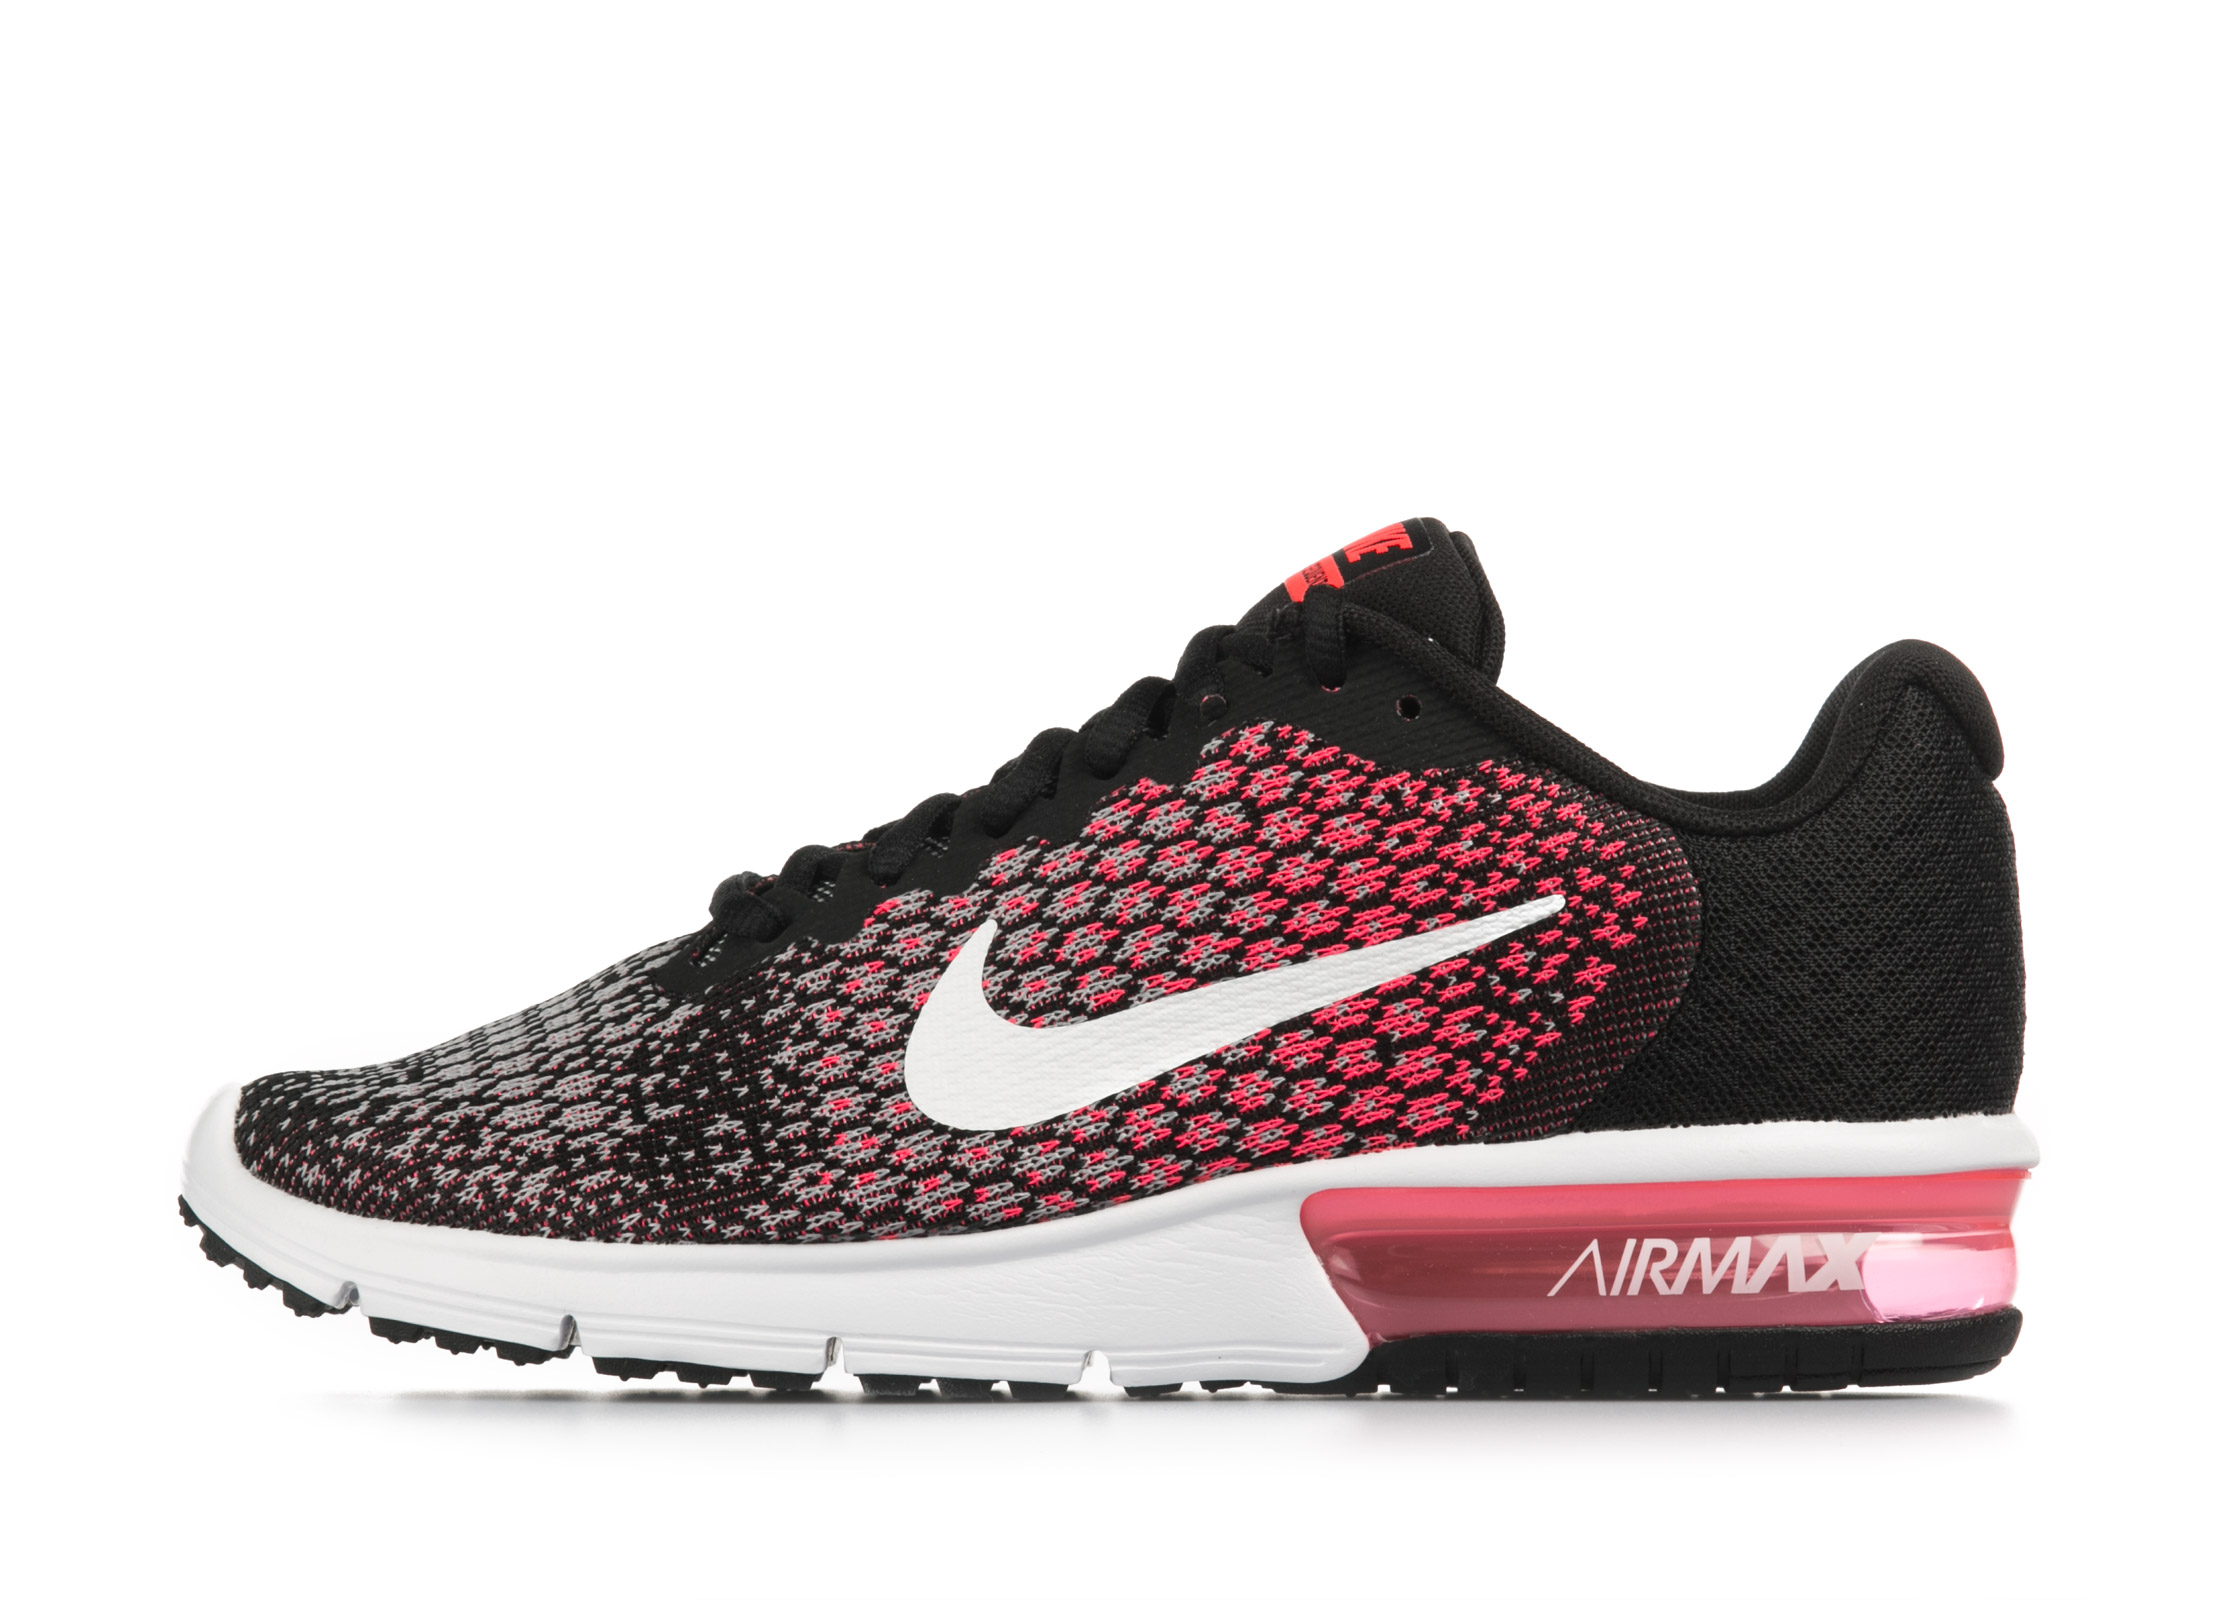 super popular 2ab74 0c0c5 ... france zackret nike air max sequent 2 852465 004 383d5 d0538